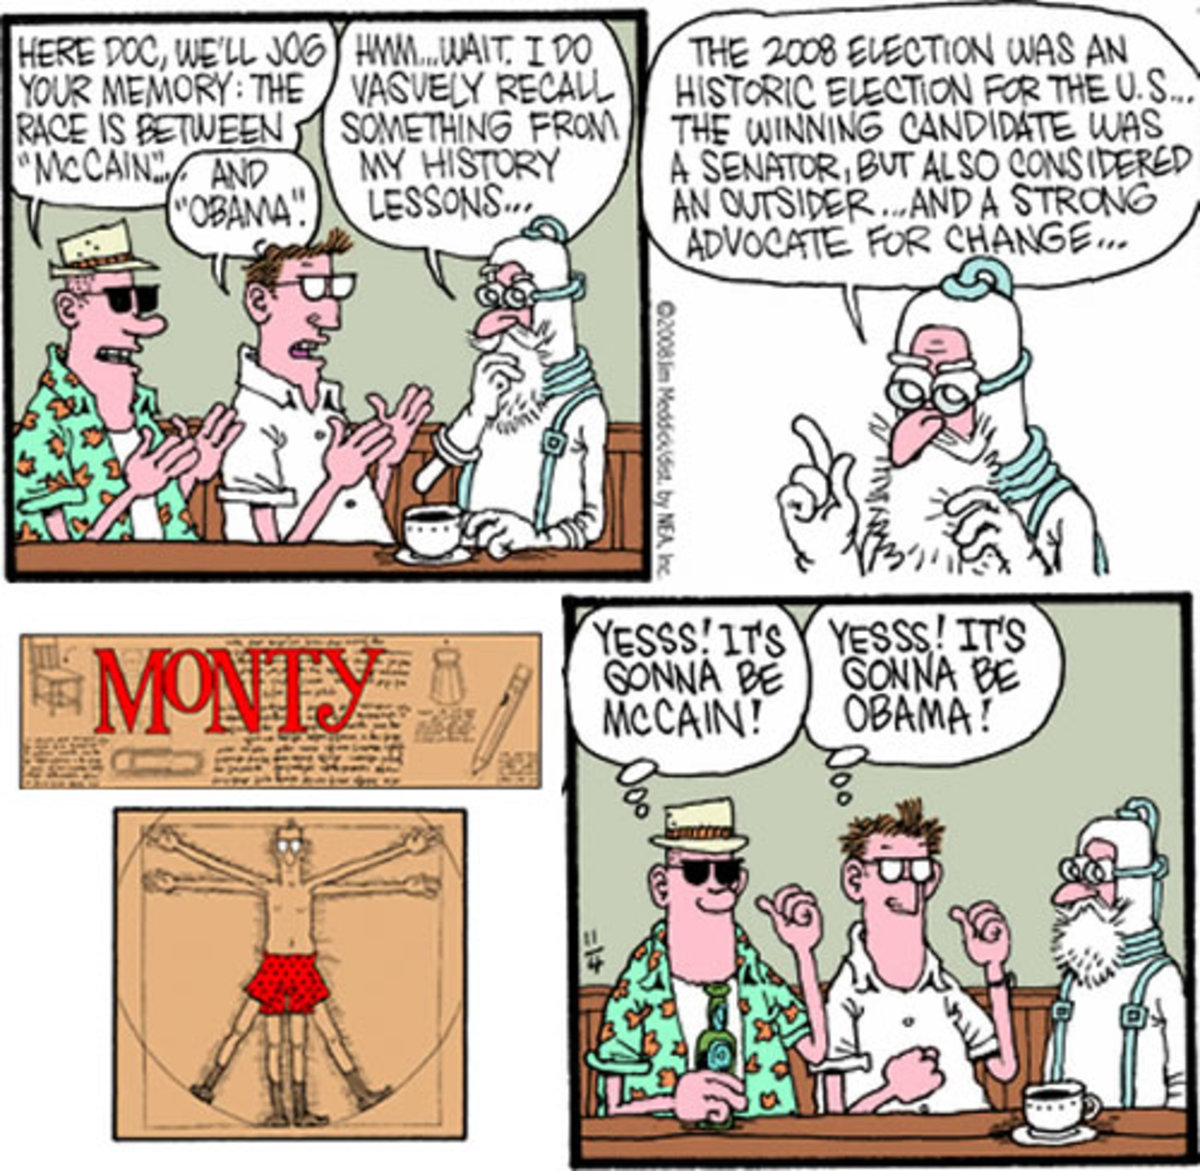 Monty cartoon explores the issue of confirmation bias. Two people, receiving the same information, drew completely different conclusions, because of their own confirmation biases: choosing to interpret information that support their own POV